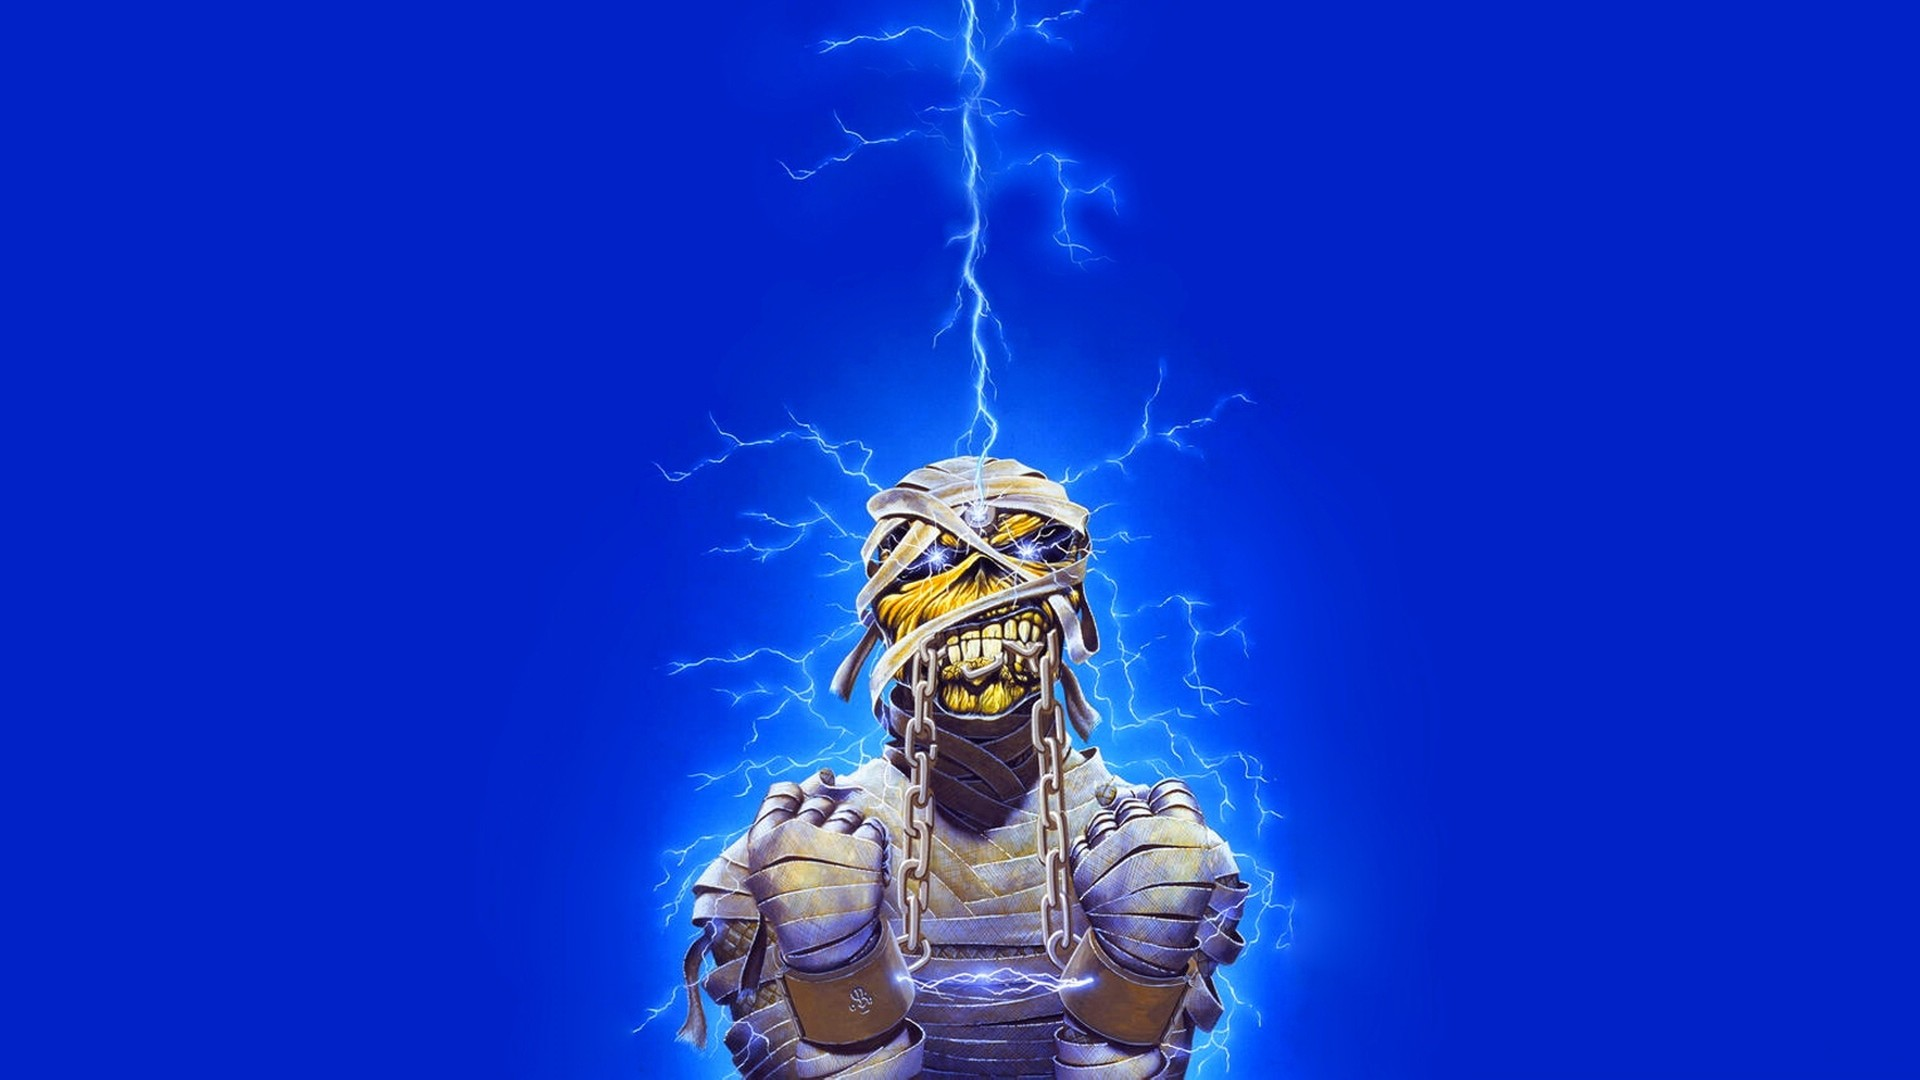 Preview wallpaper iron maiden, undead, lightning, energy, light 1920×1080